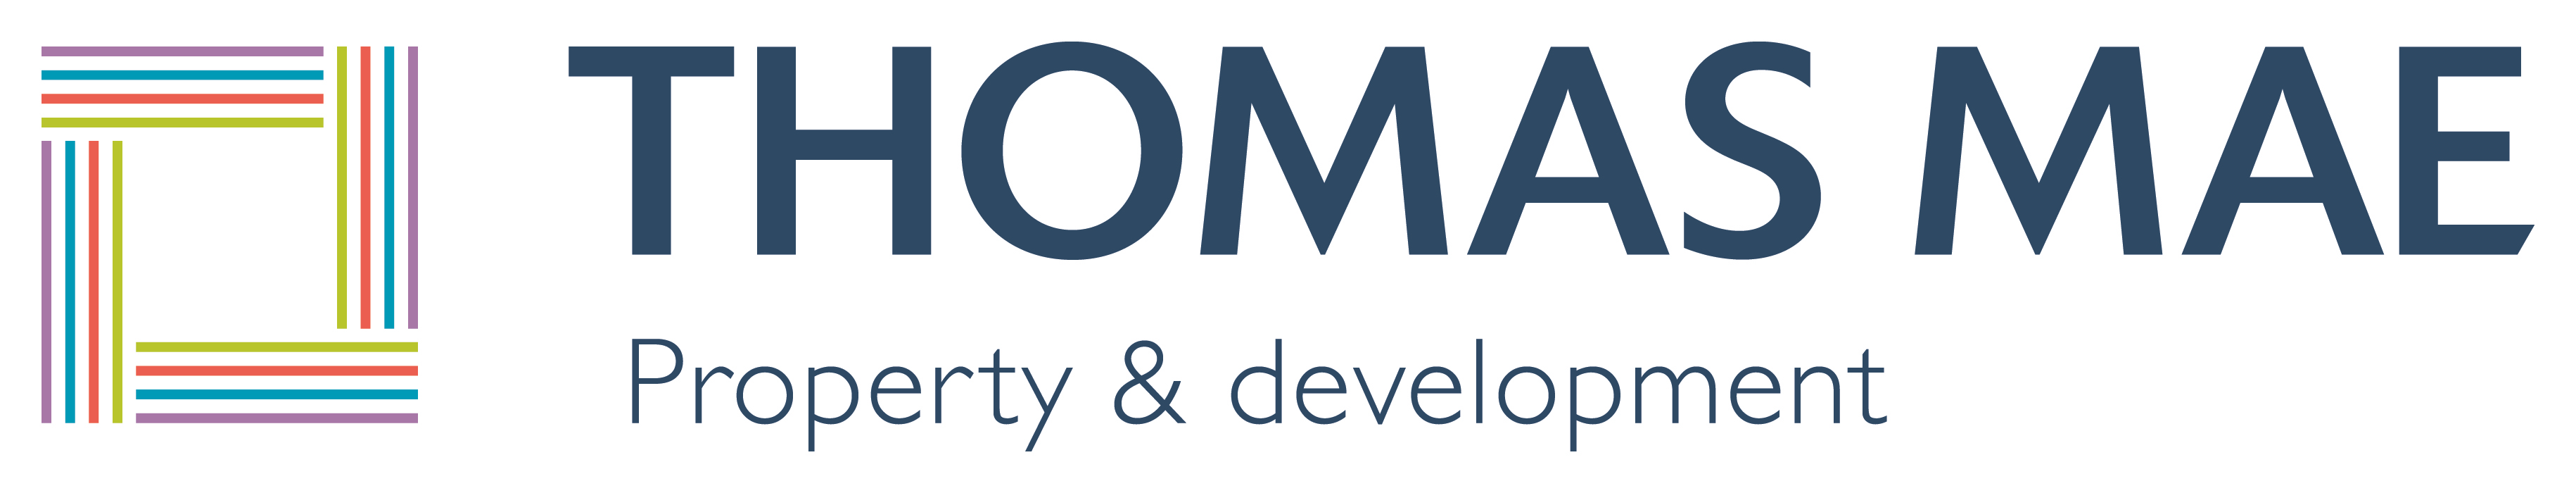 Thomas Mae Property & Development